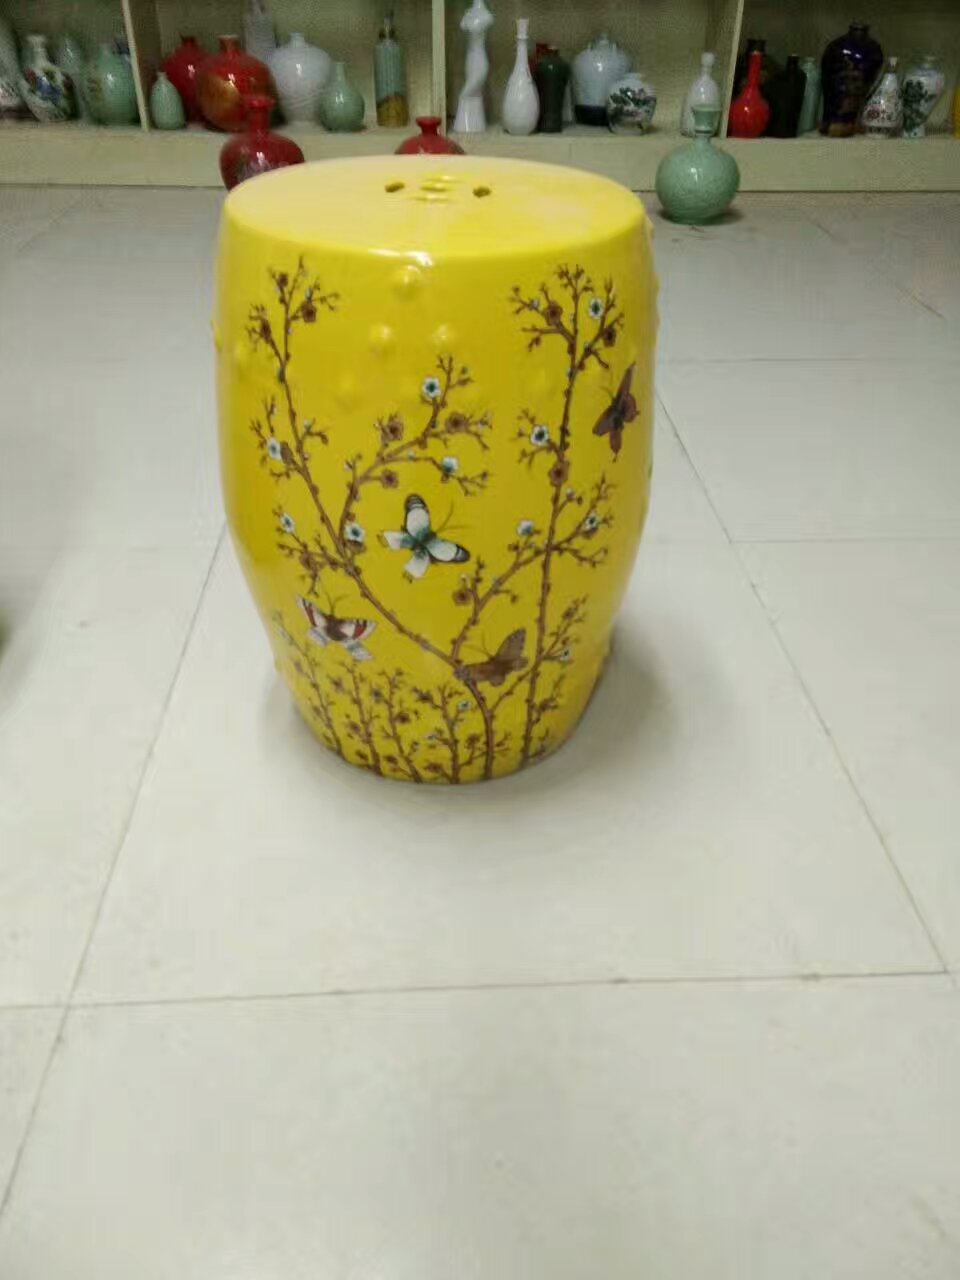 Magnificent Us 269 0 Butterfly Jingdezhen Porcelain Garden Stool Ceramic Stool For Dressing Table Drum Chinese Antique Porcelain Chinese Gard In Stools Unemploymentrelief Wooden Chair Designs For Living Room Unemploymentrelieforg